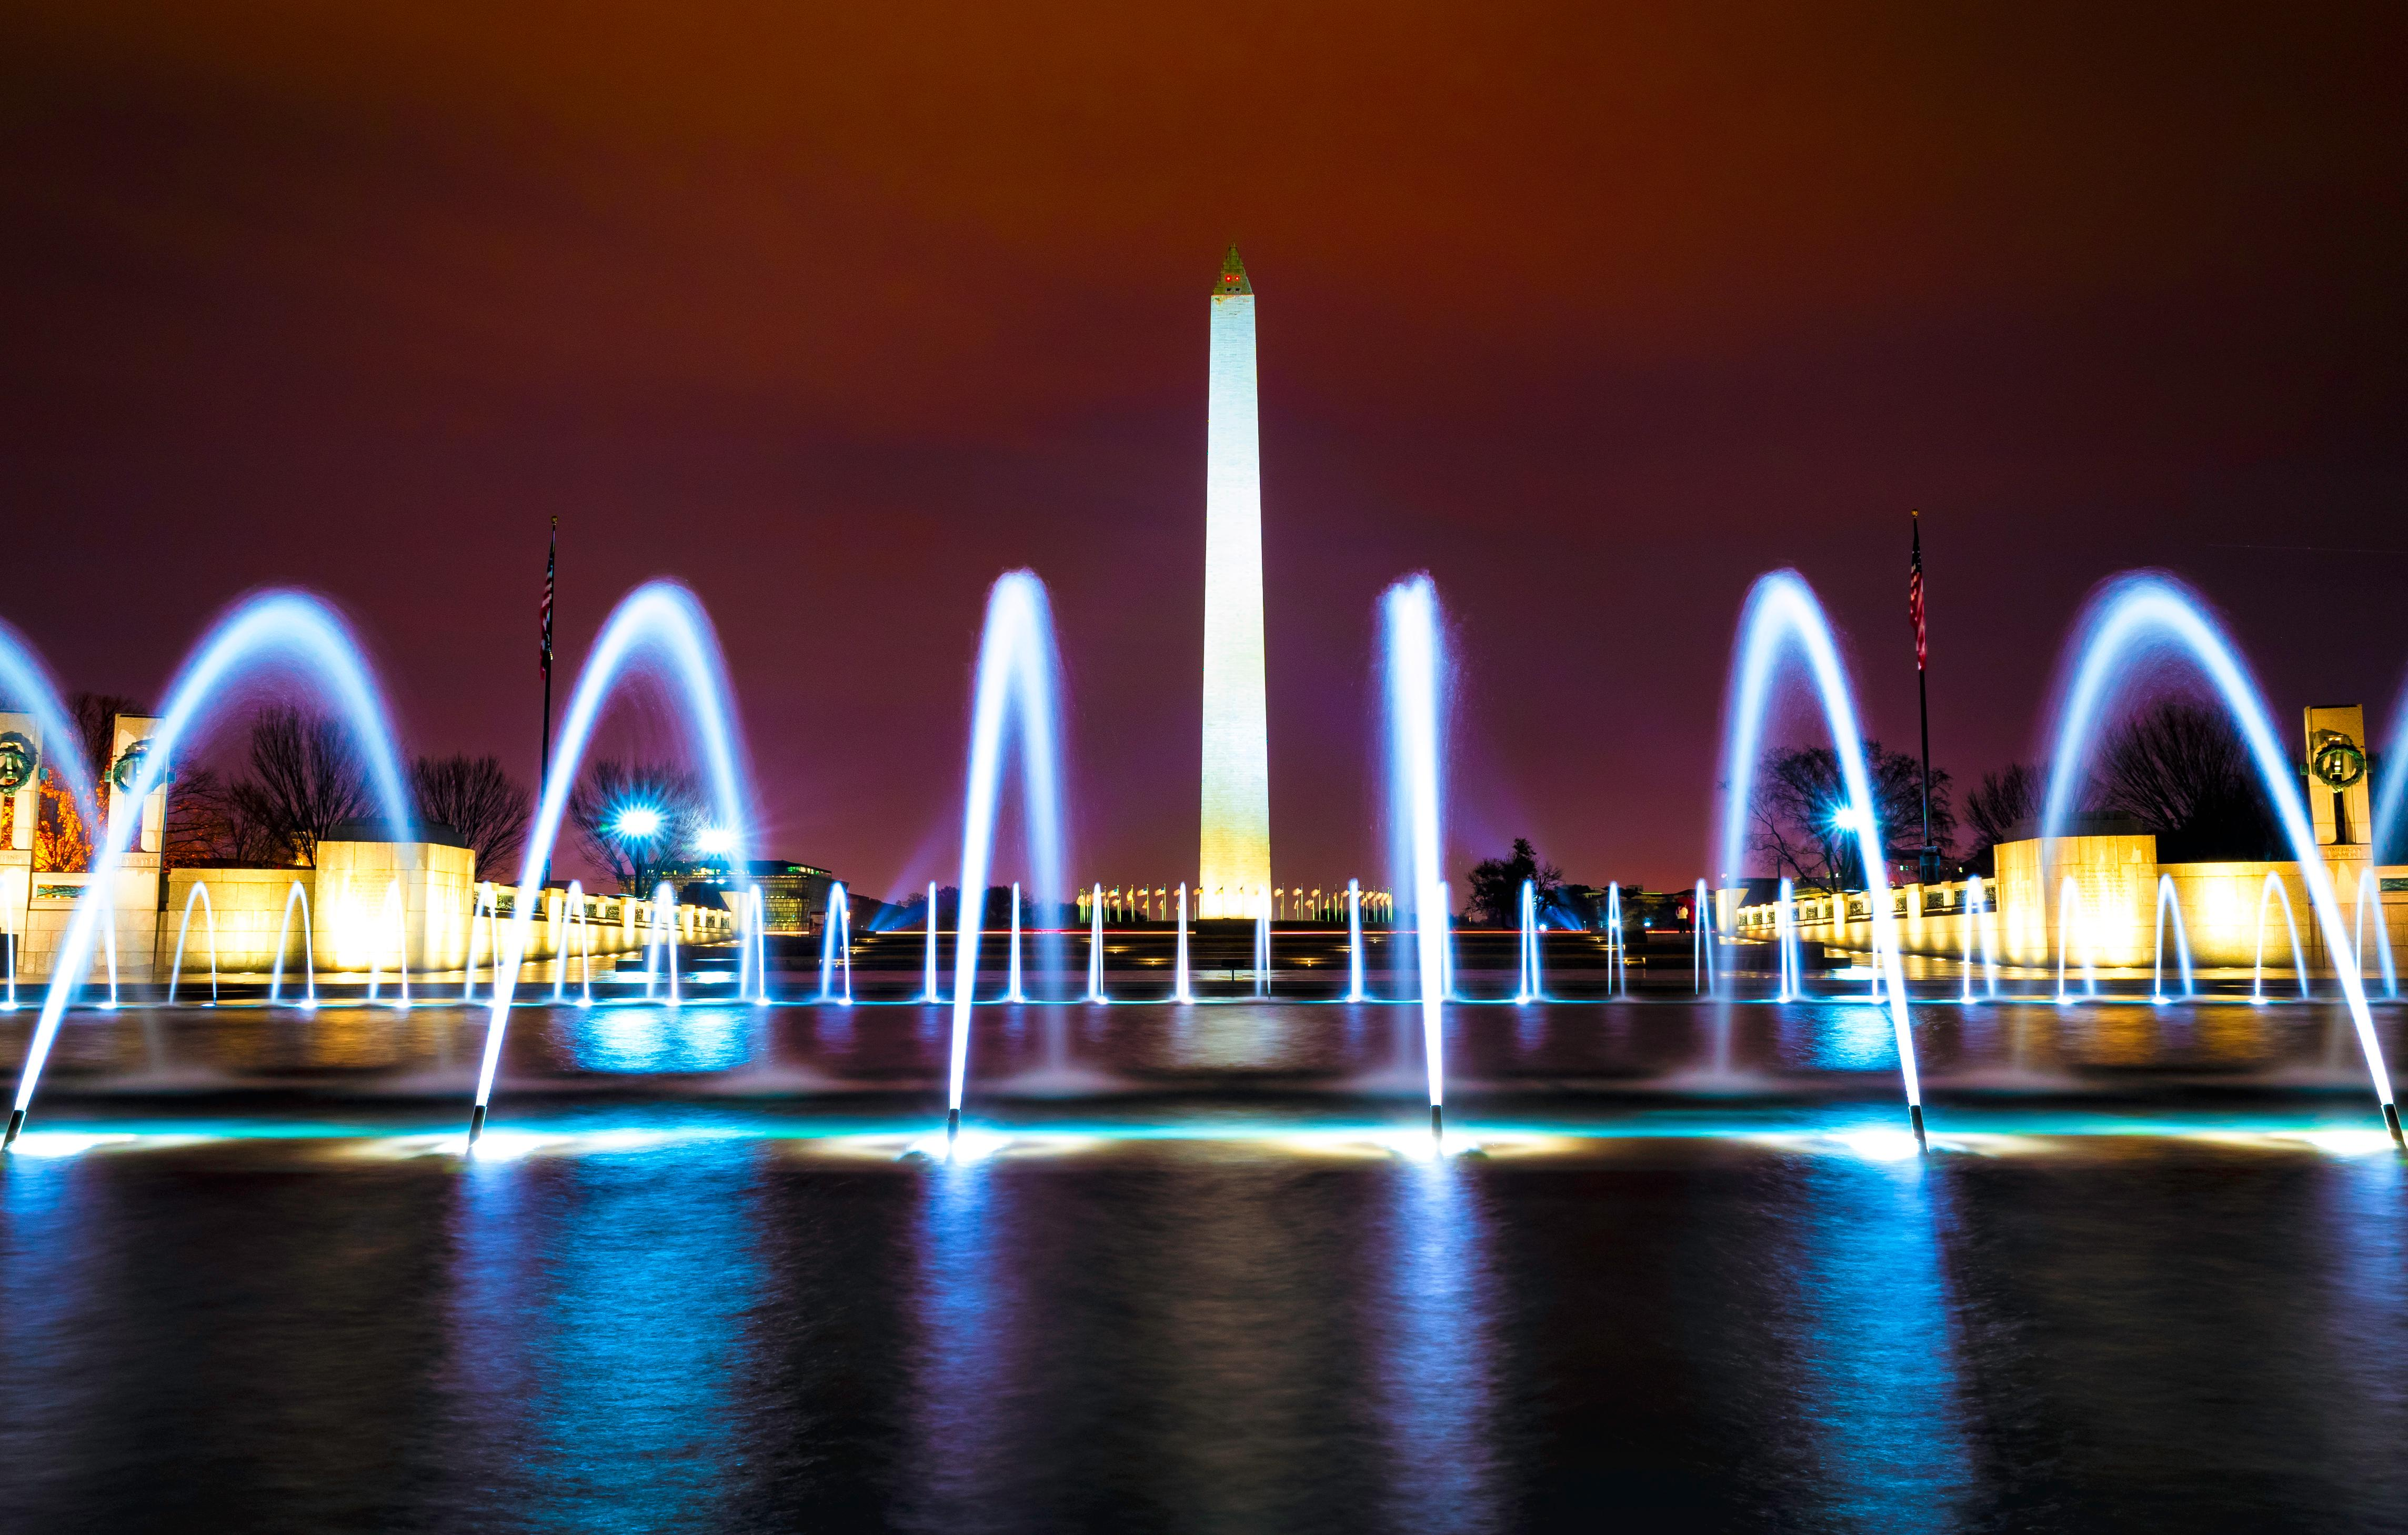 Long exposure shot of the fountains at the WWII memorial with the Washington Monument in the background. Taken December, 2017. (Image: Adam Brockett){ }